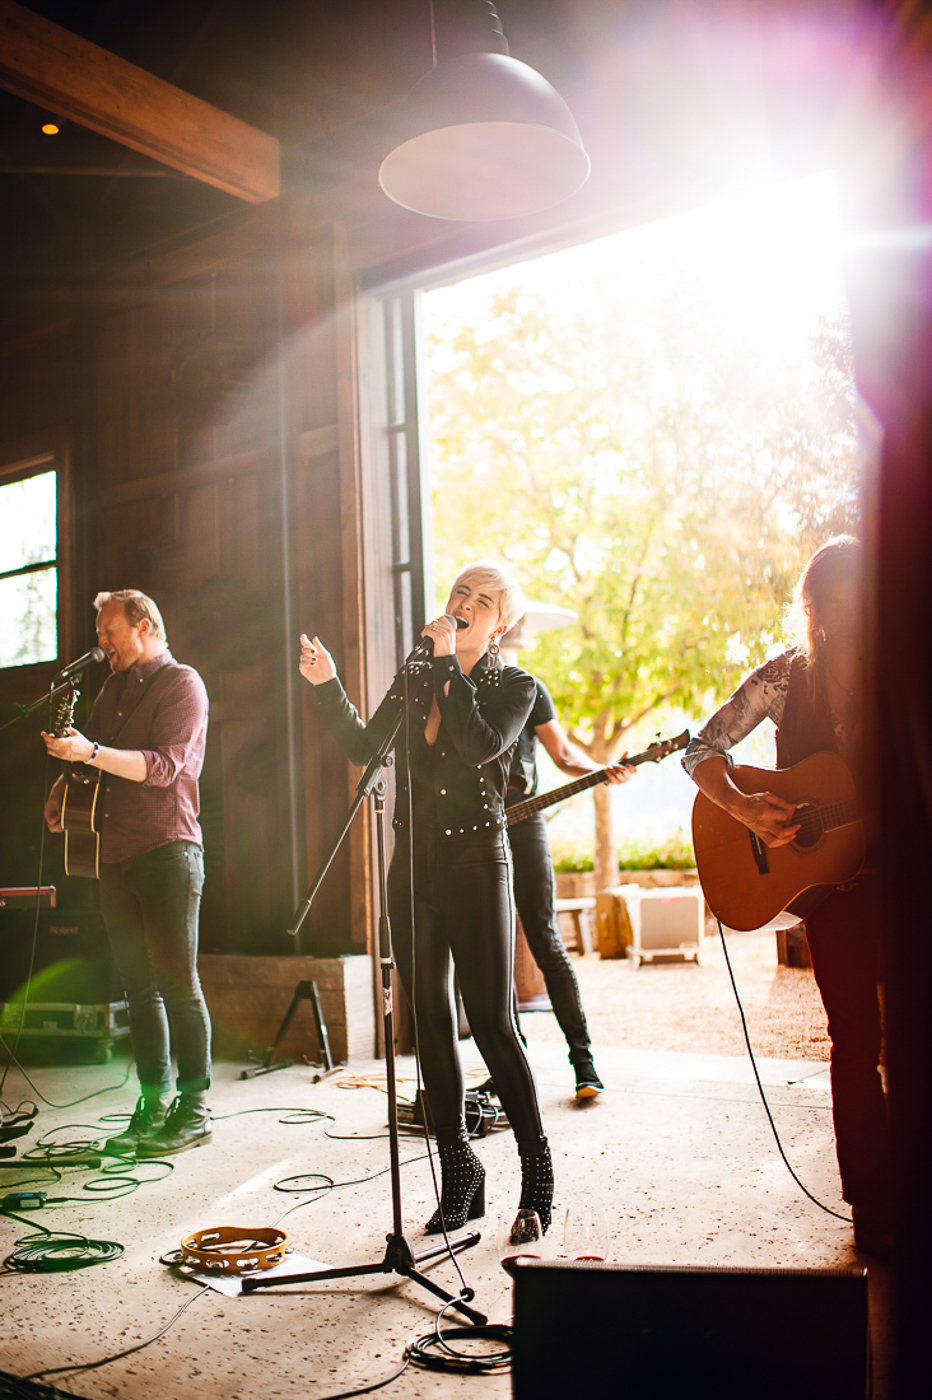 PHOCO Best of 2018 Photograph Fort Collins-53 Concert Music Festival Live in the Vineyard Napa California Maggie Rose Lens Flare.jpg